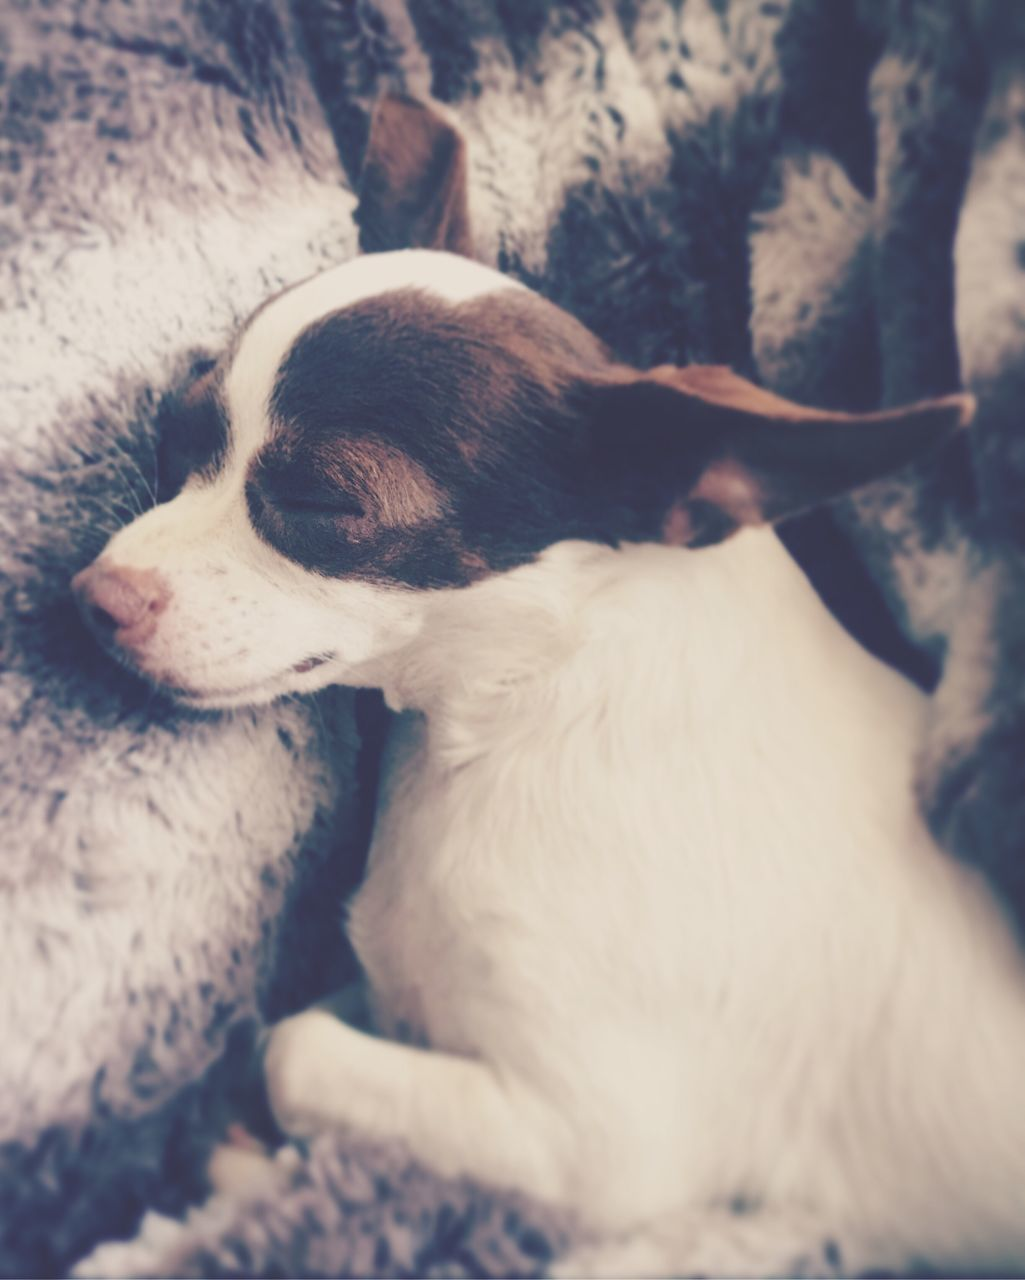 dog, pets, domestic animals, one animal, animal themes, mammal, indoors, relaxation, no people, close-up, day, portrait